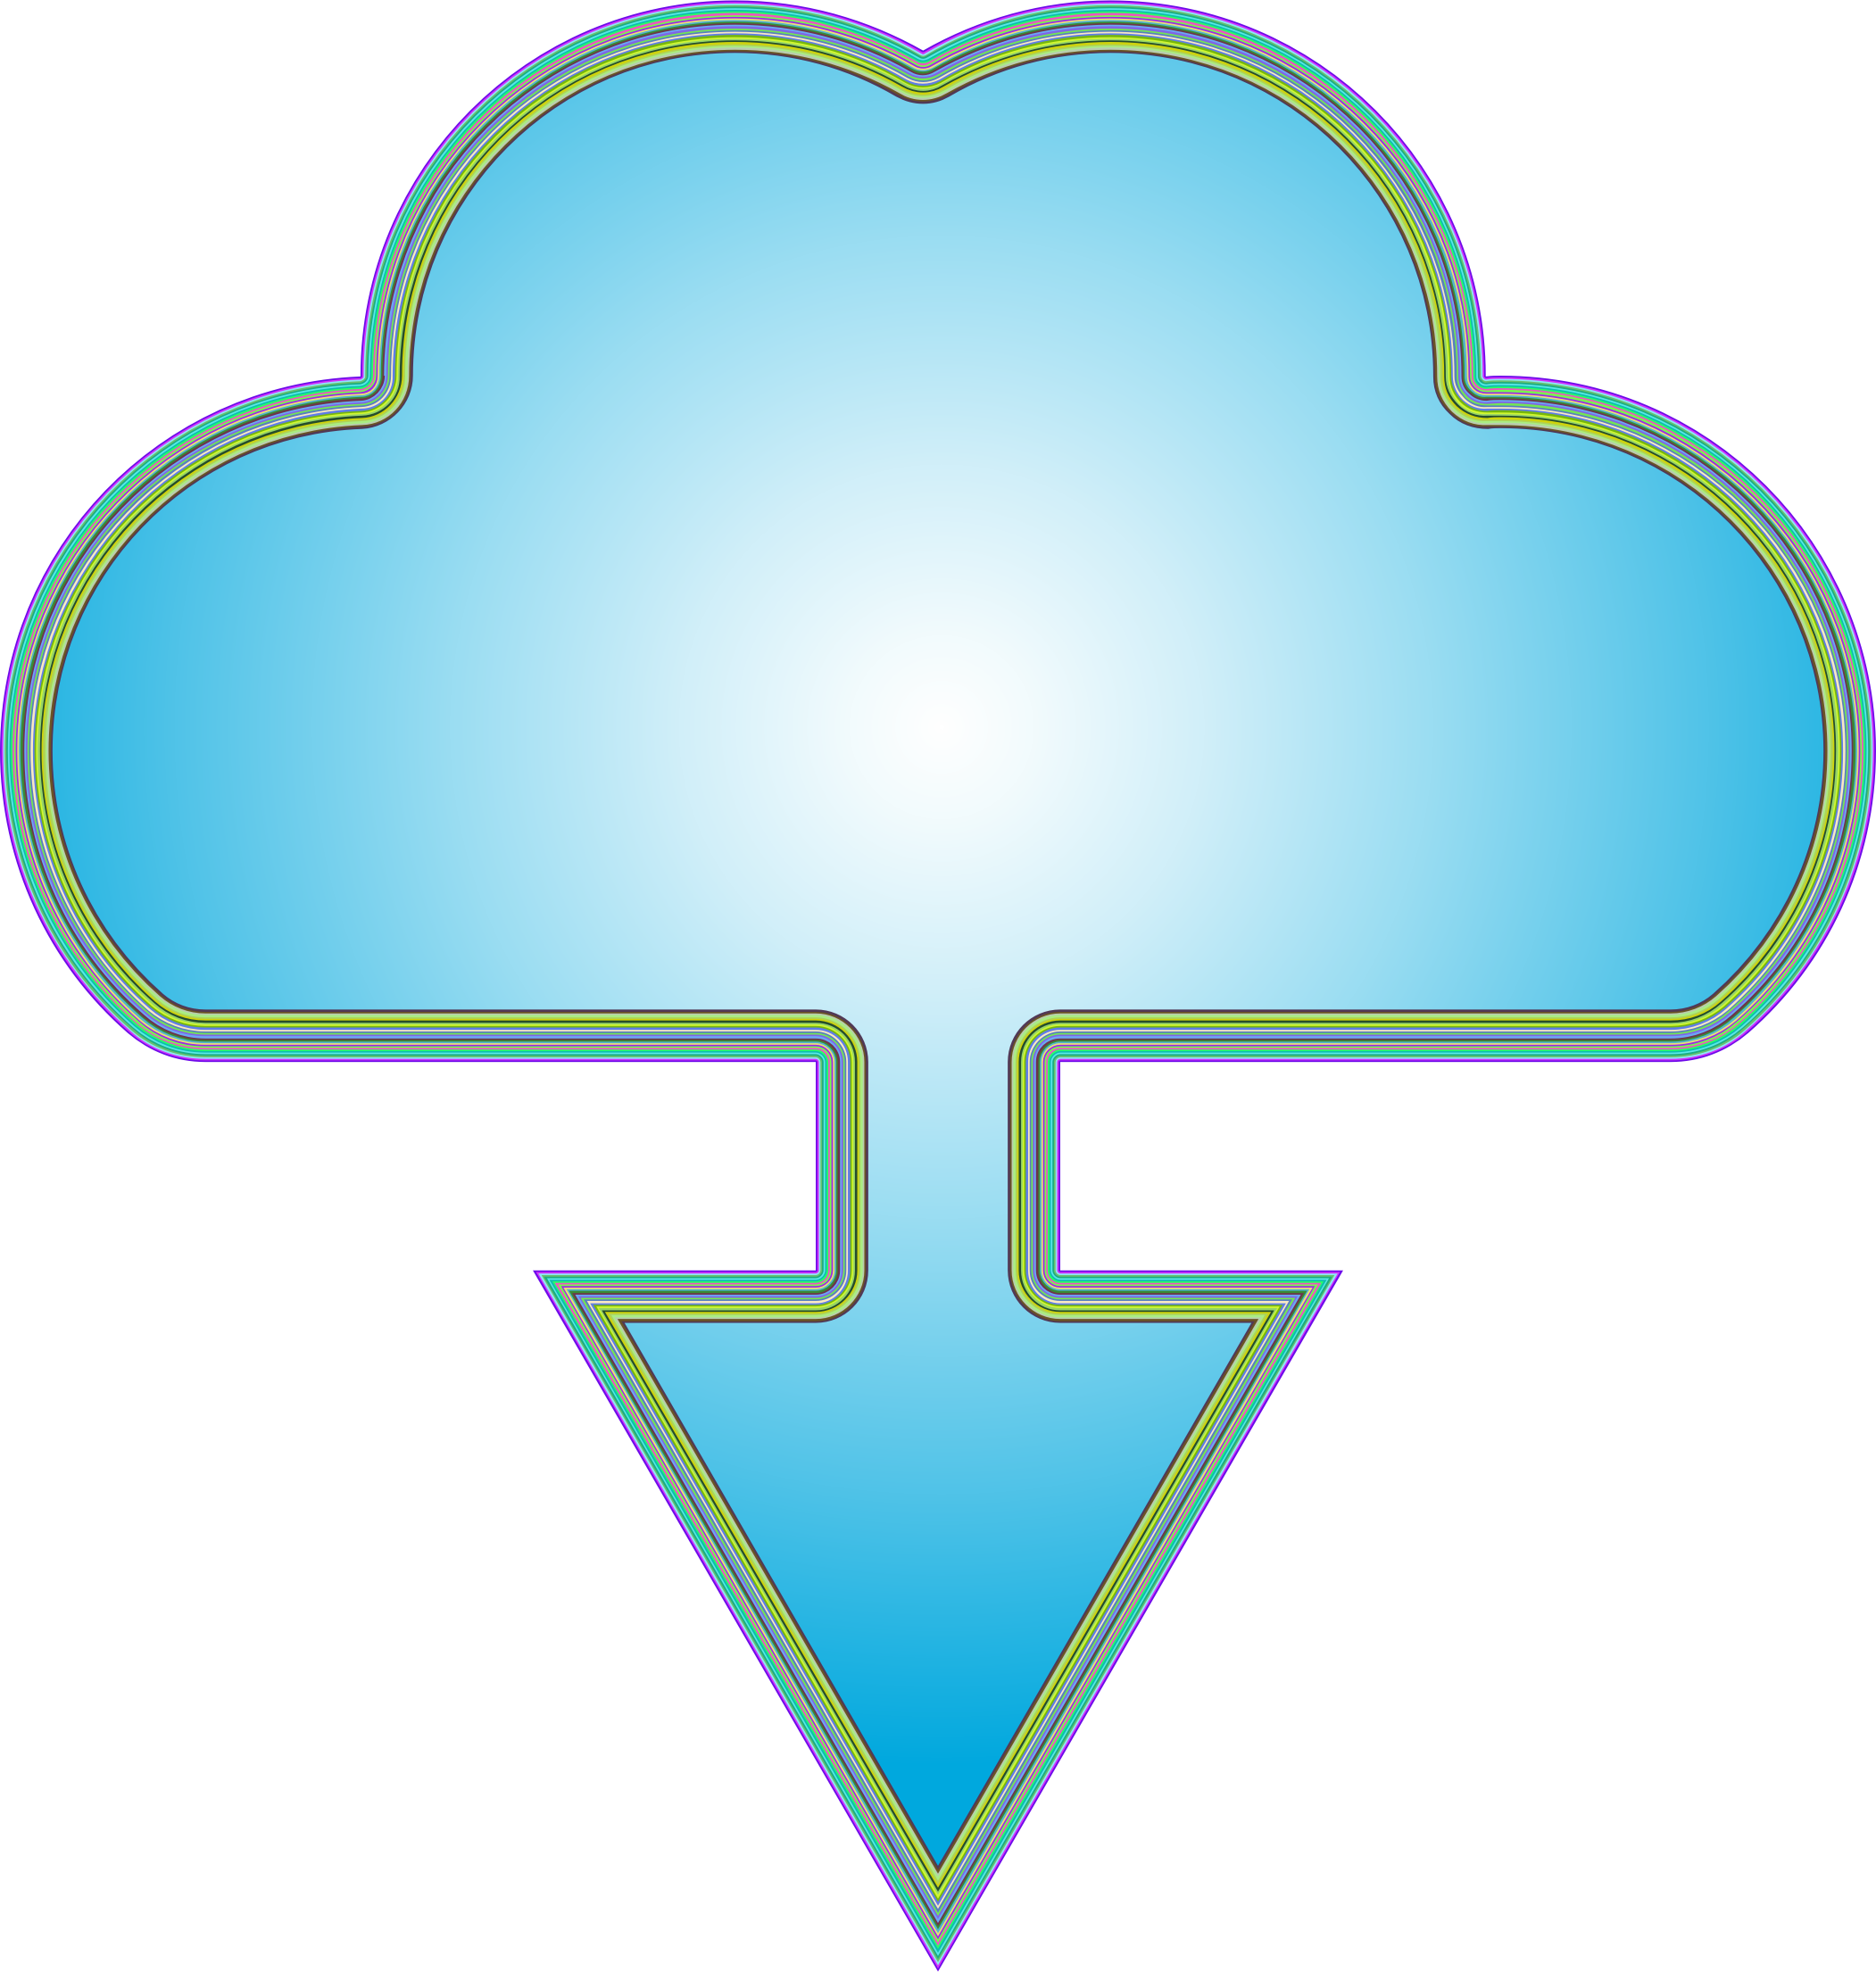 Download Cloud Icon 2 by GDJ